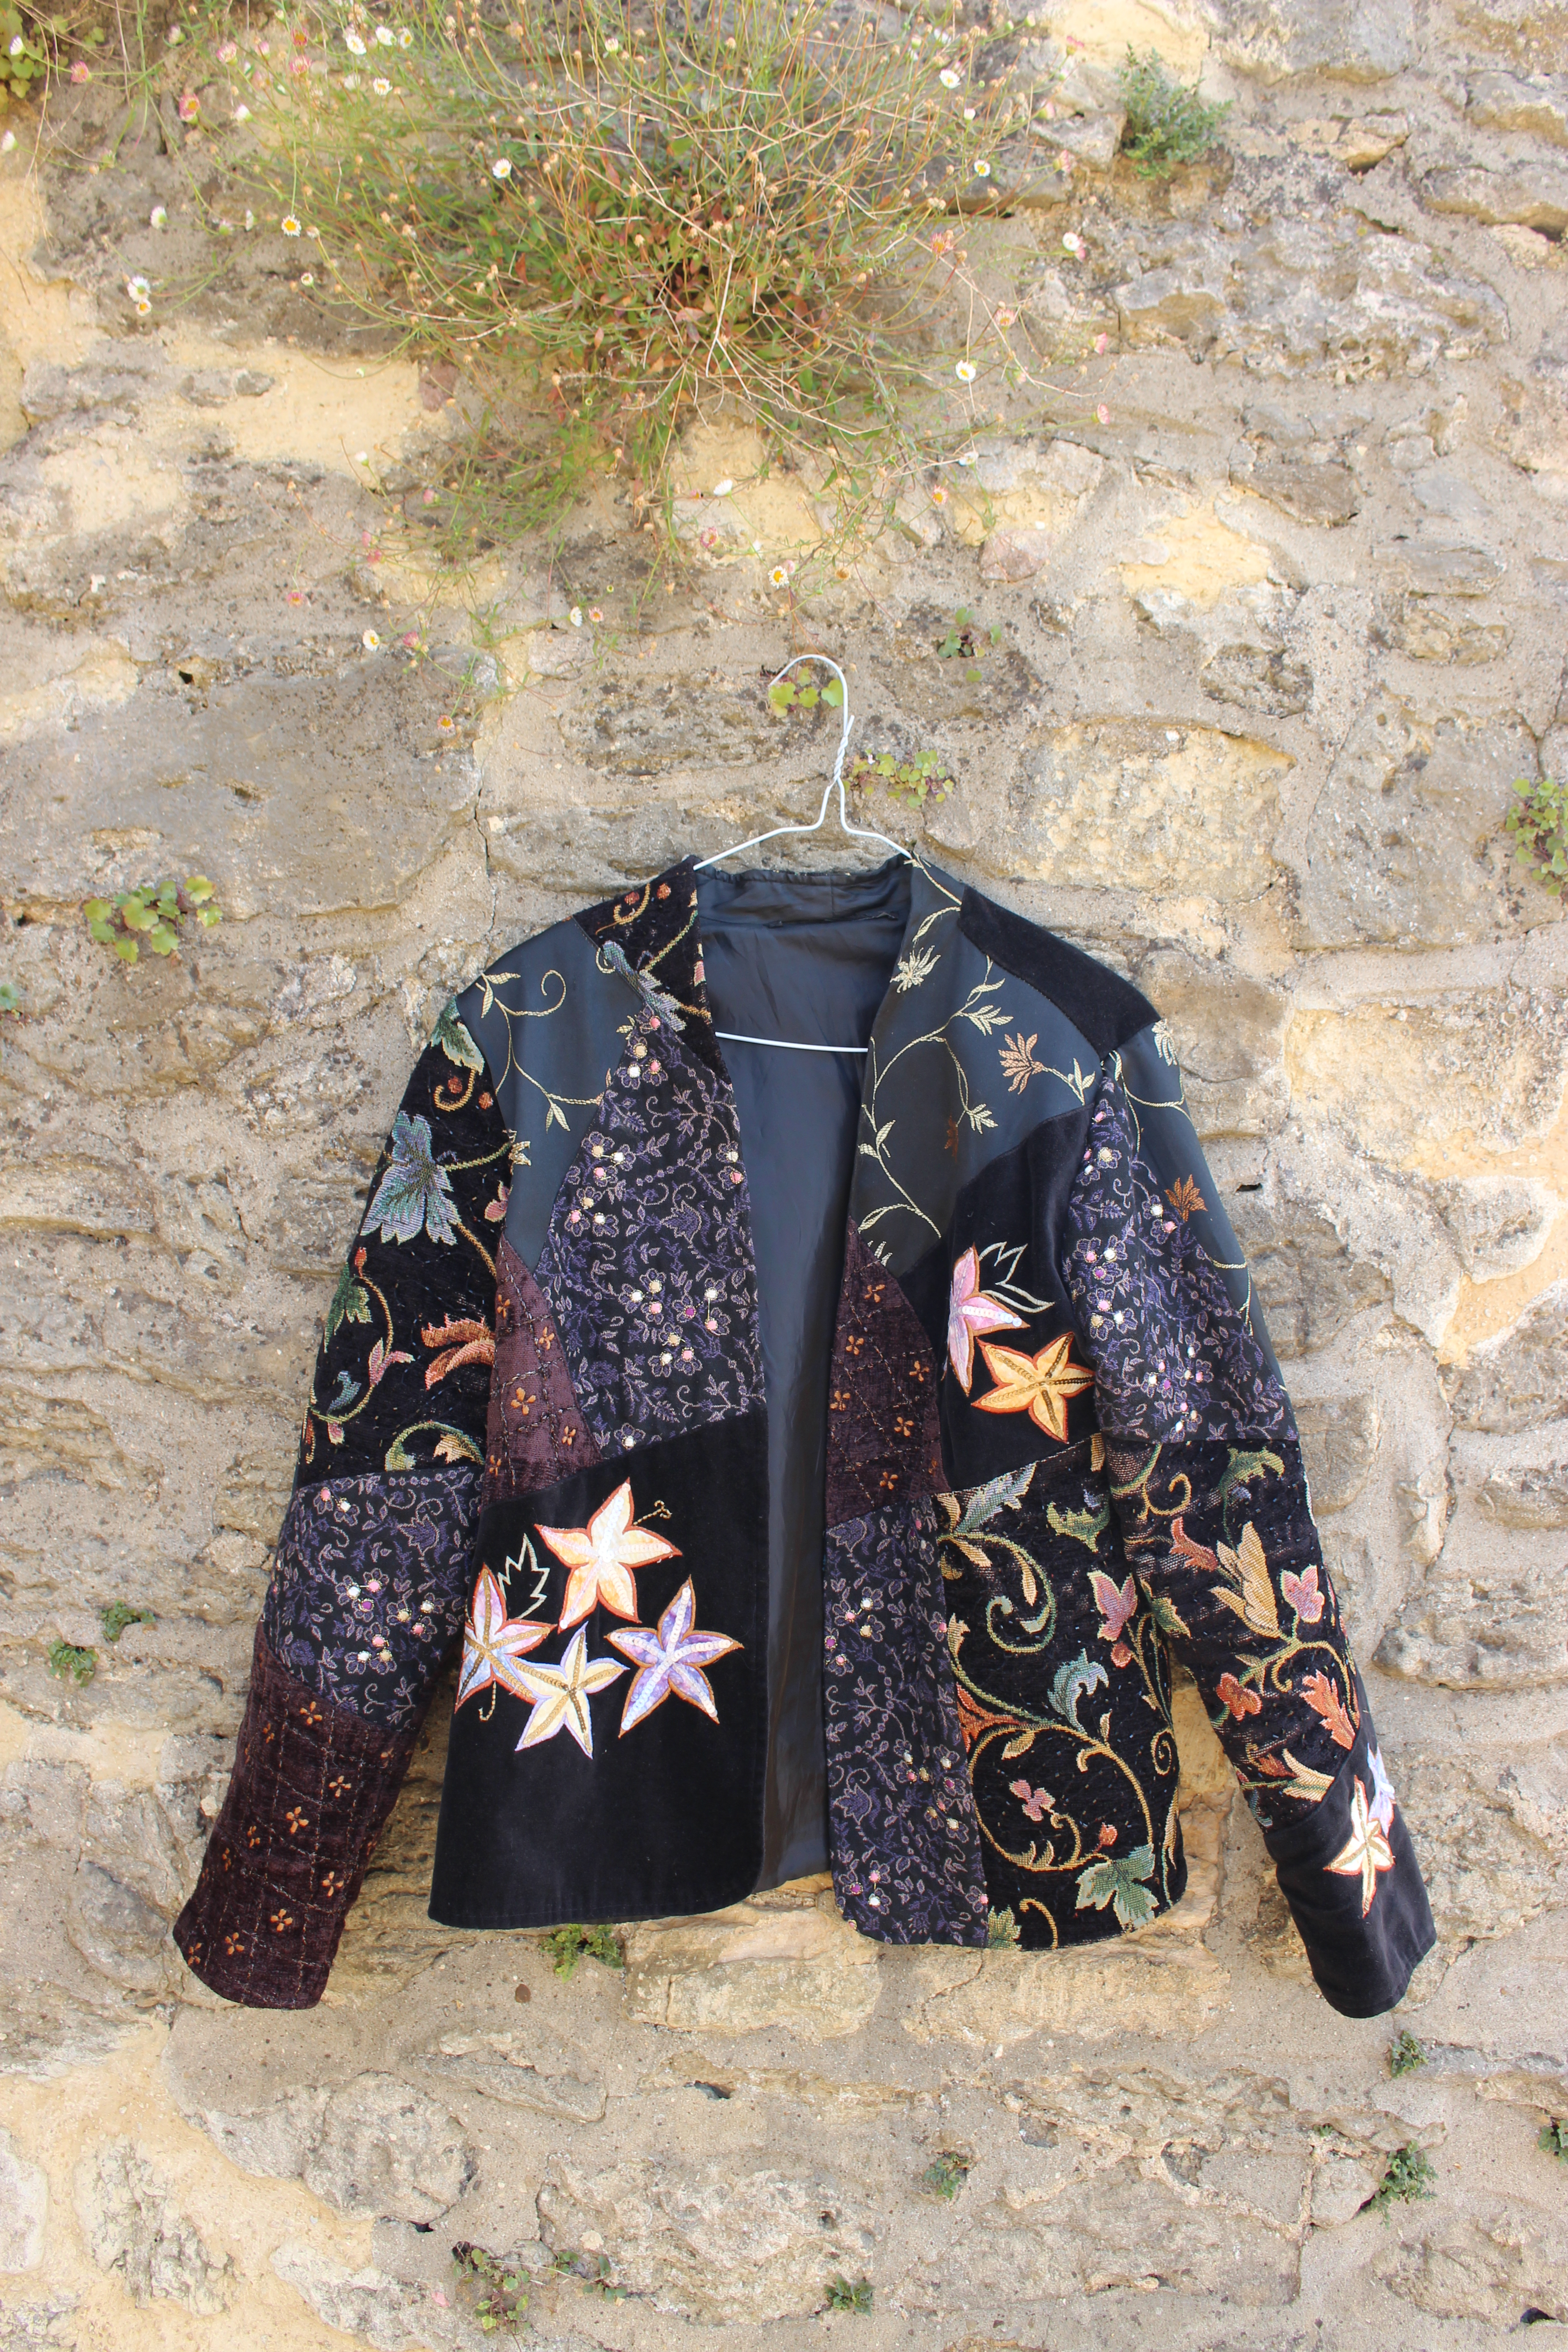 Patchwork top, from Unicorn, 5 Ship Street, Oxford